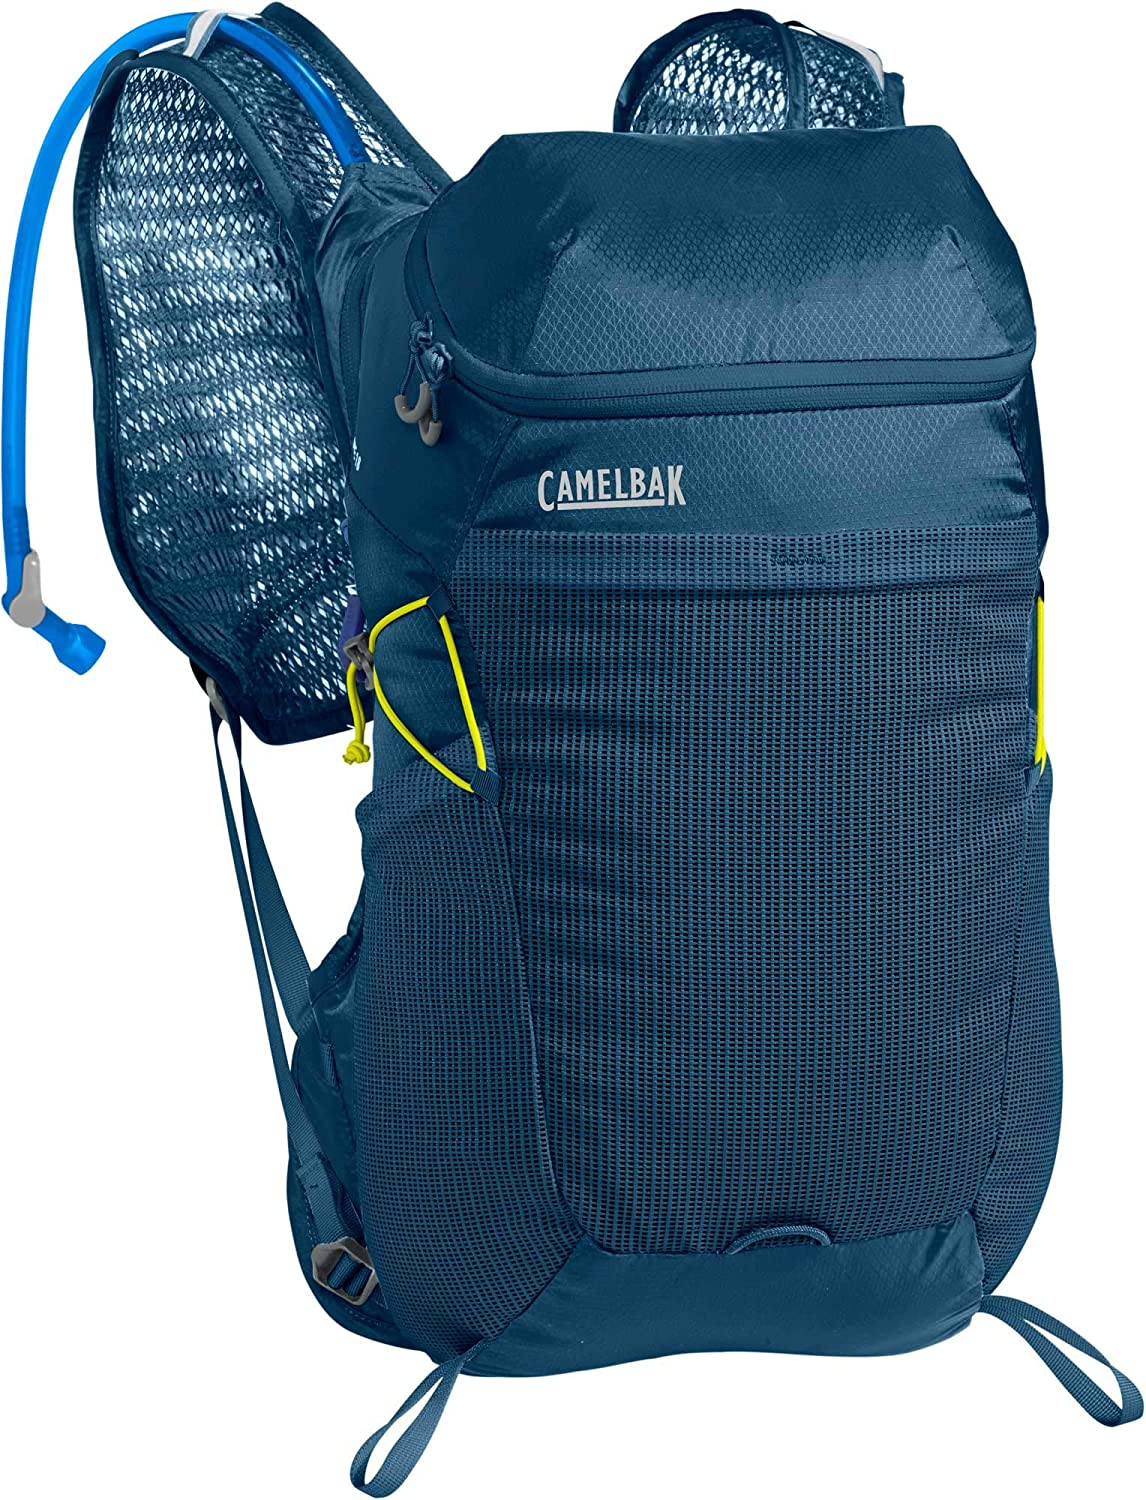 Top 10 Best Camelbak For Hiking Reviews 2